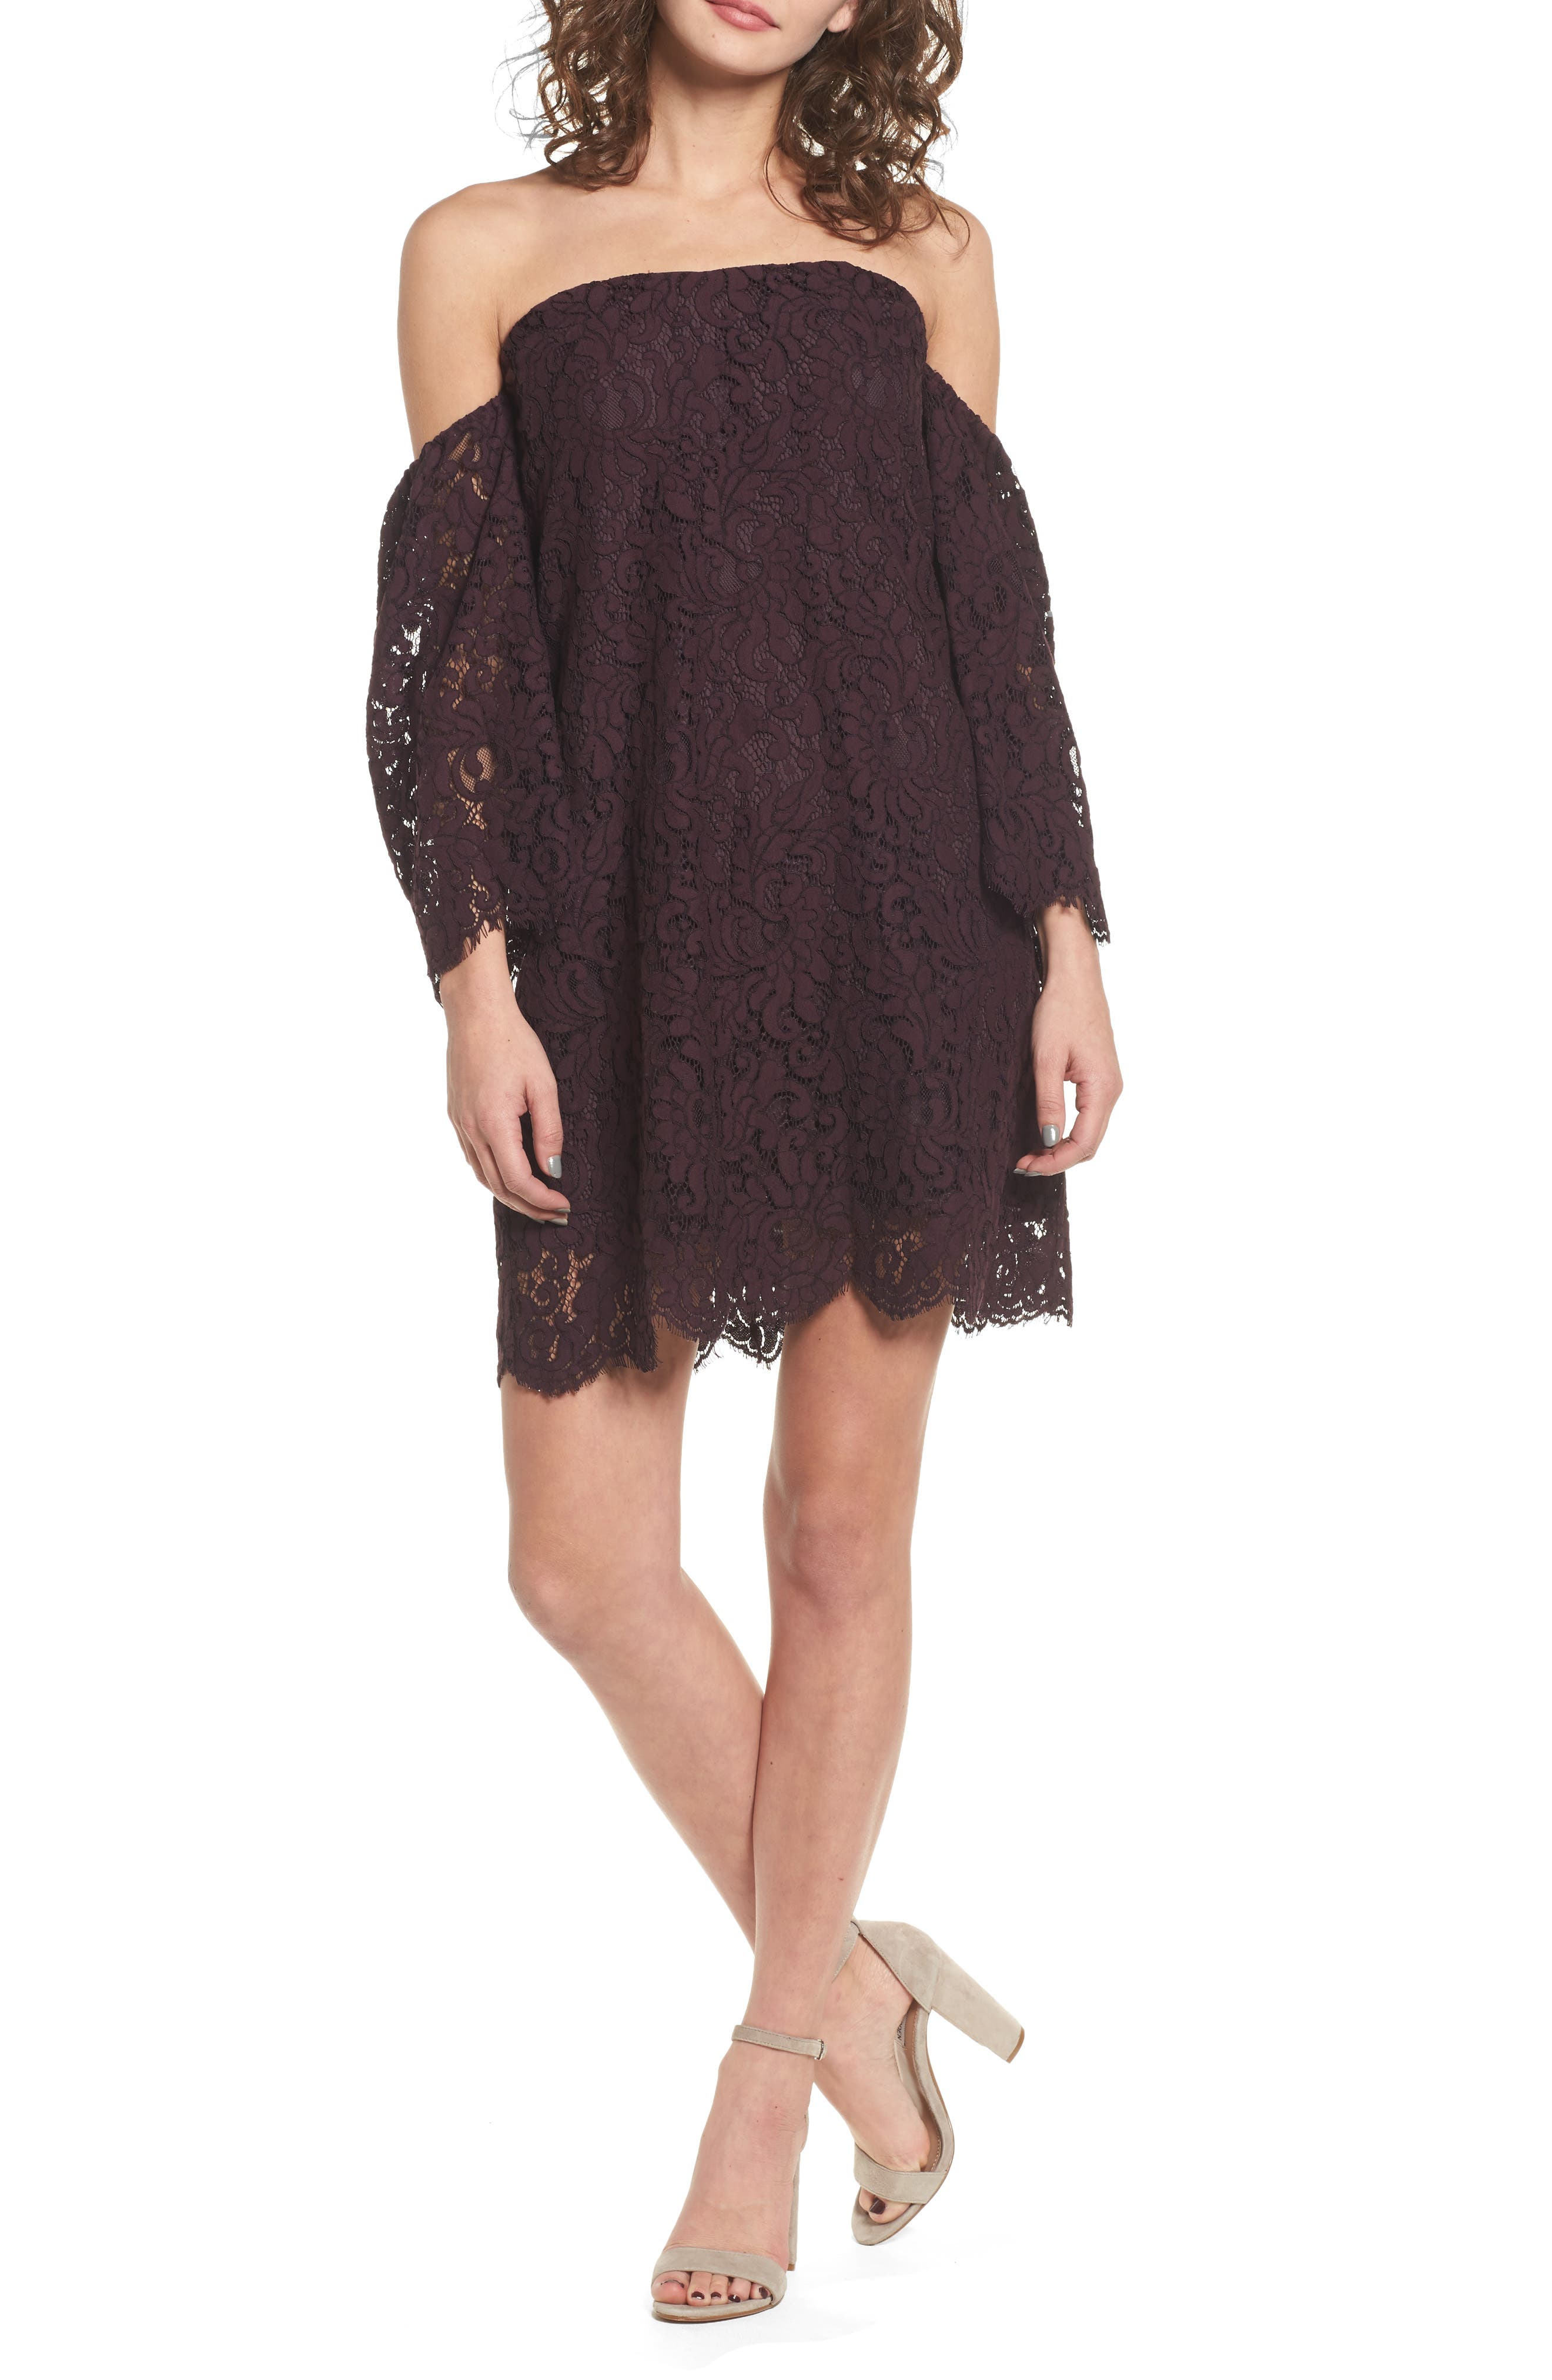 cupcakes and cashmere Adalira Off the Shoulder Lace Dress